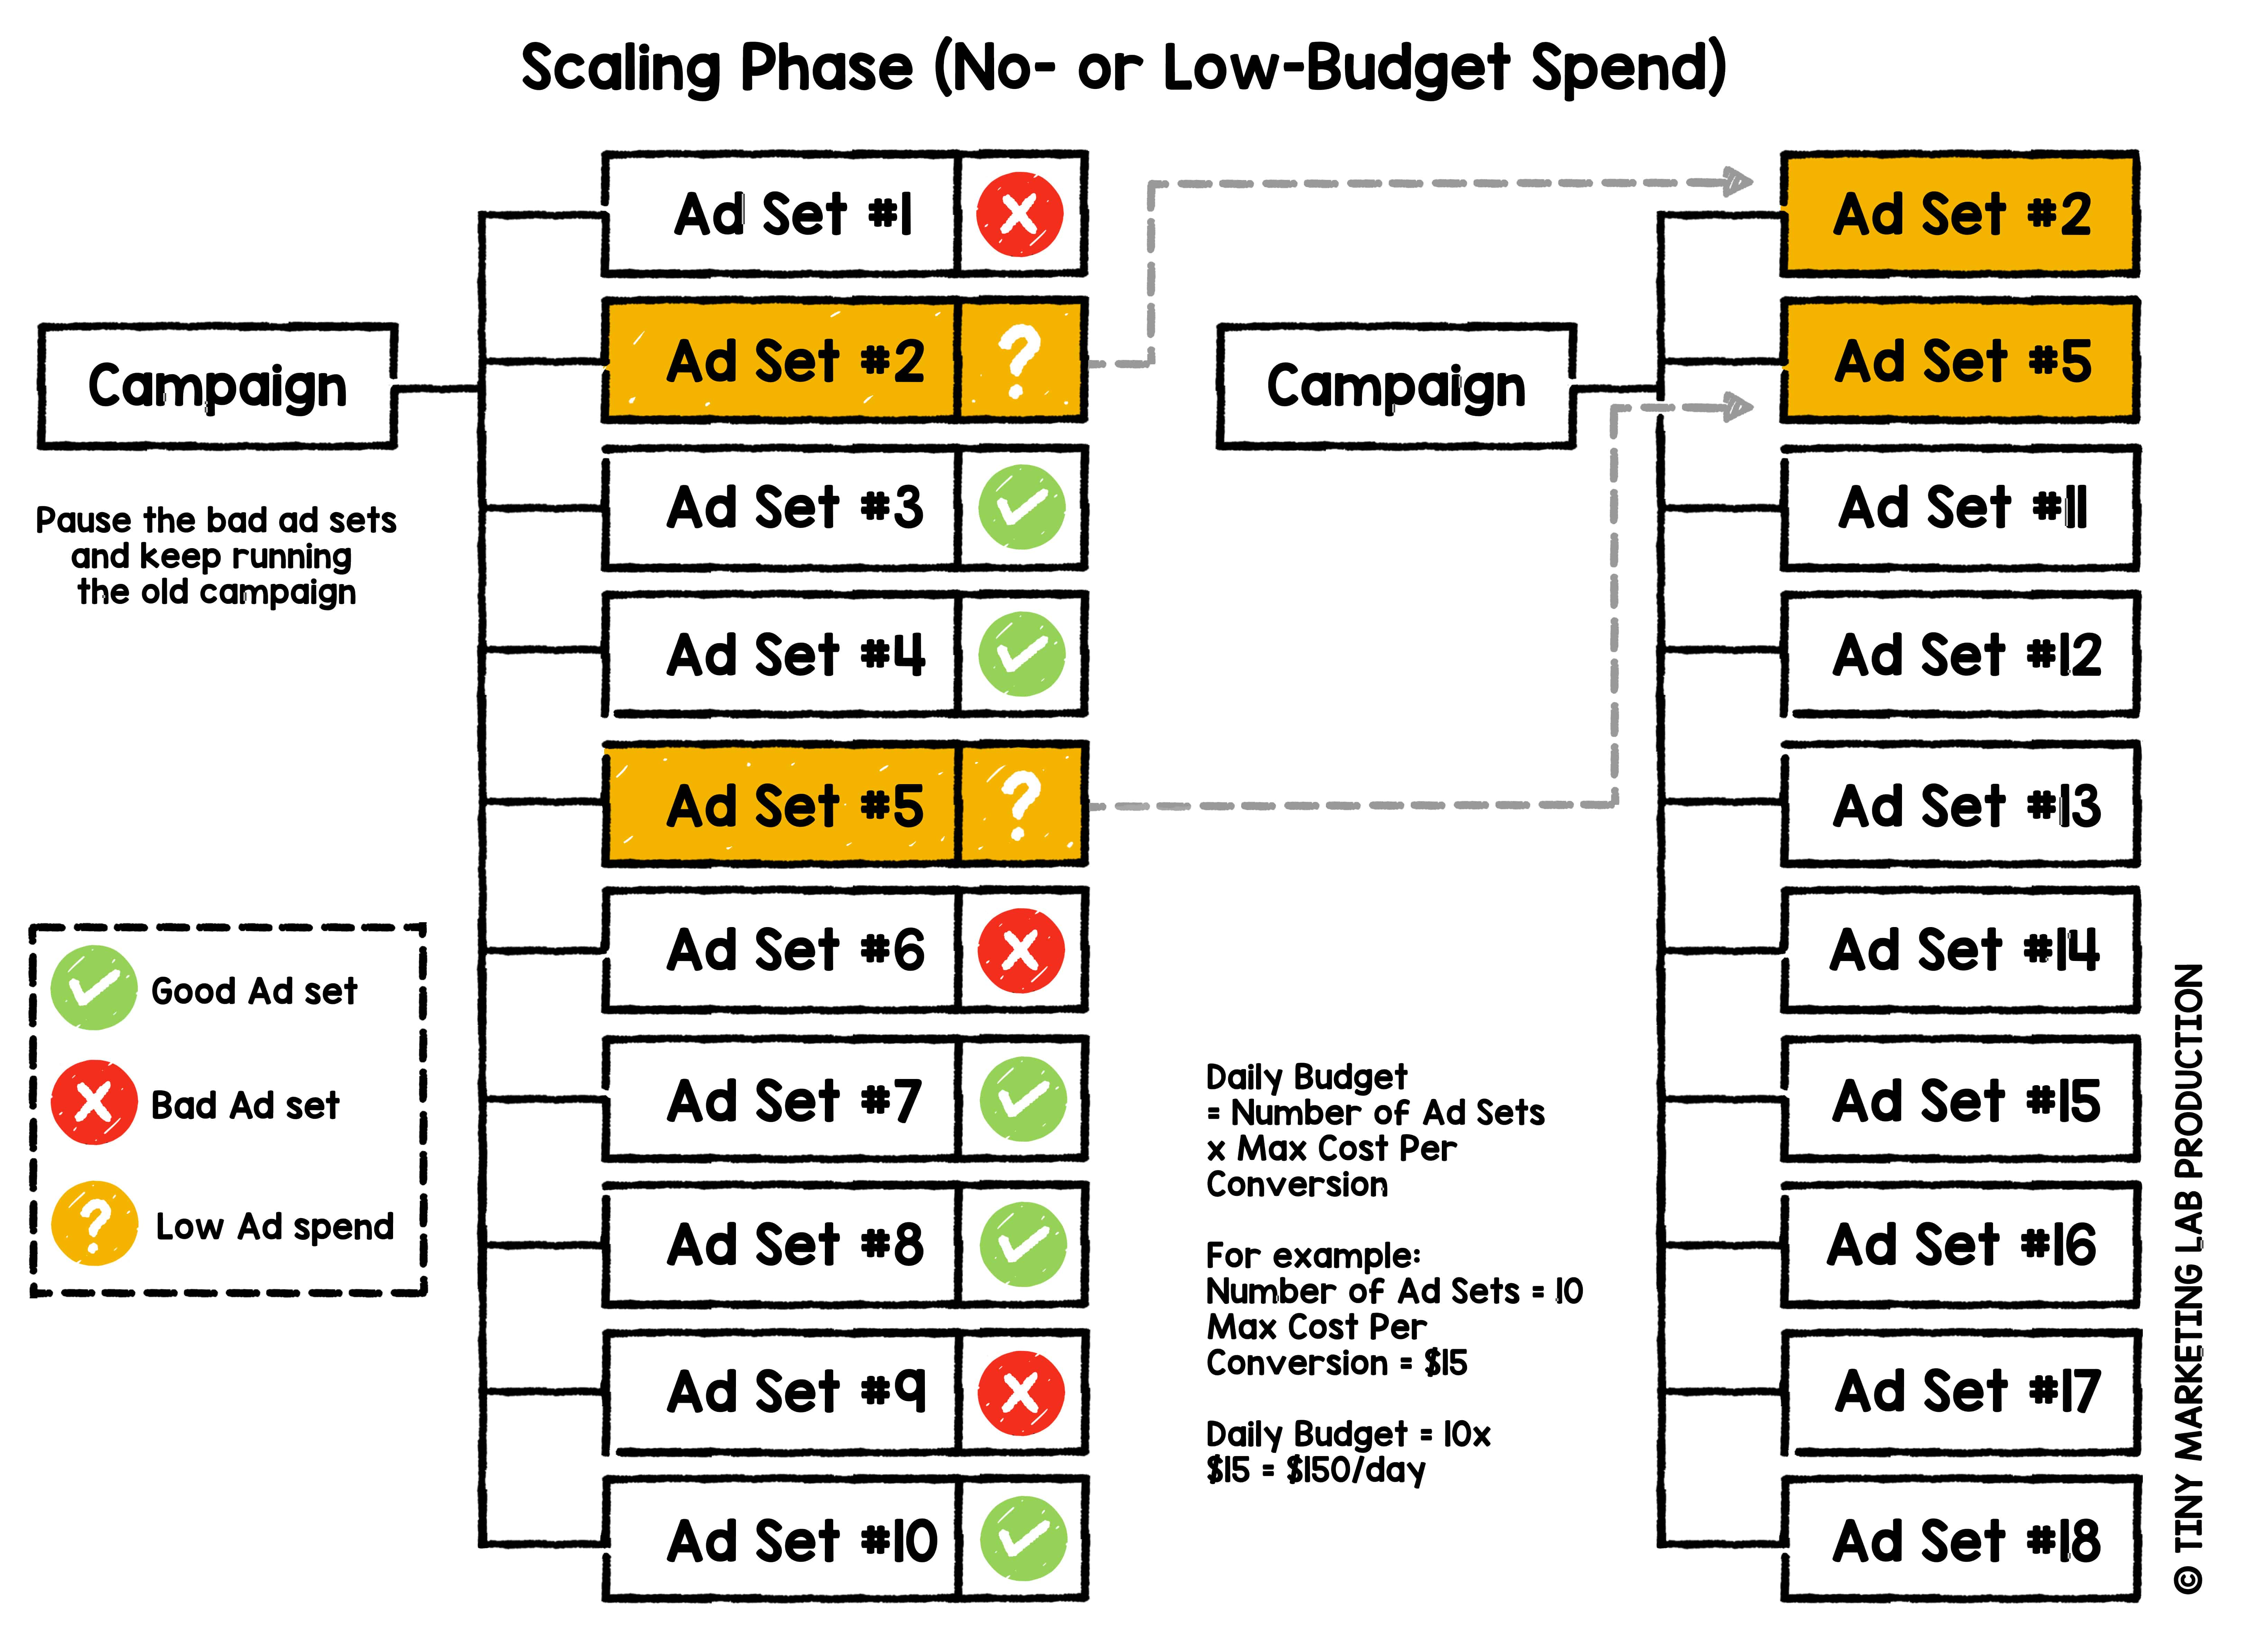 Campaign Budget Optimization - Testing Phase